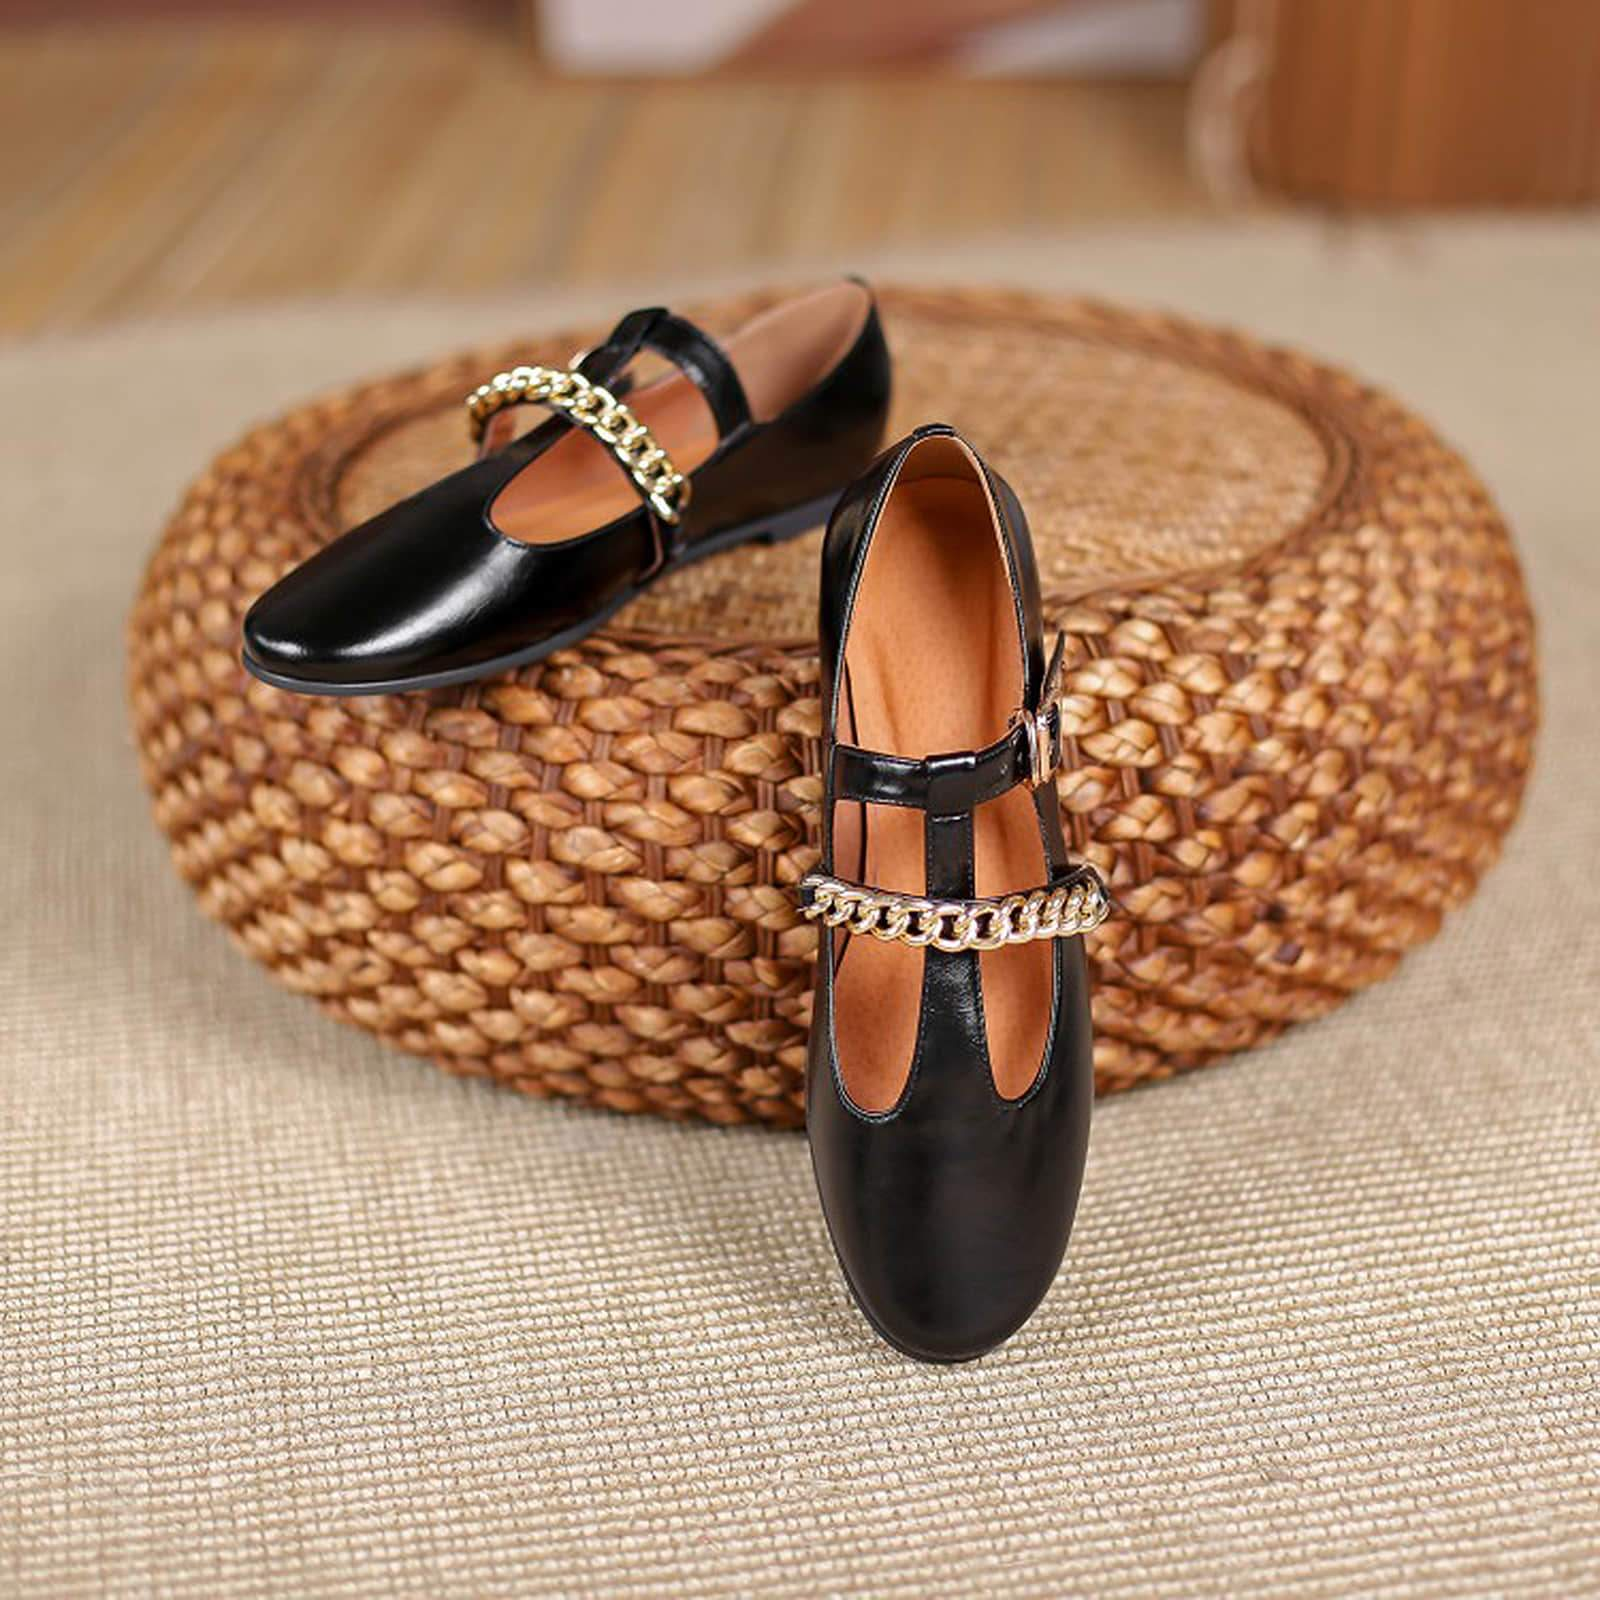 T-shaped Metal Chain Flat Loafers